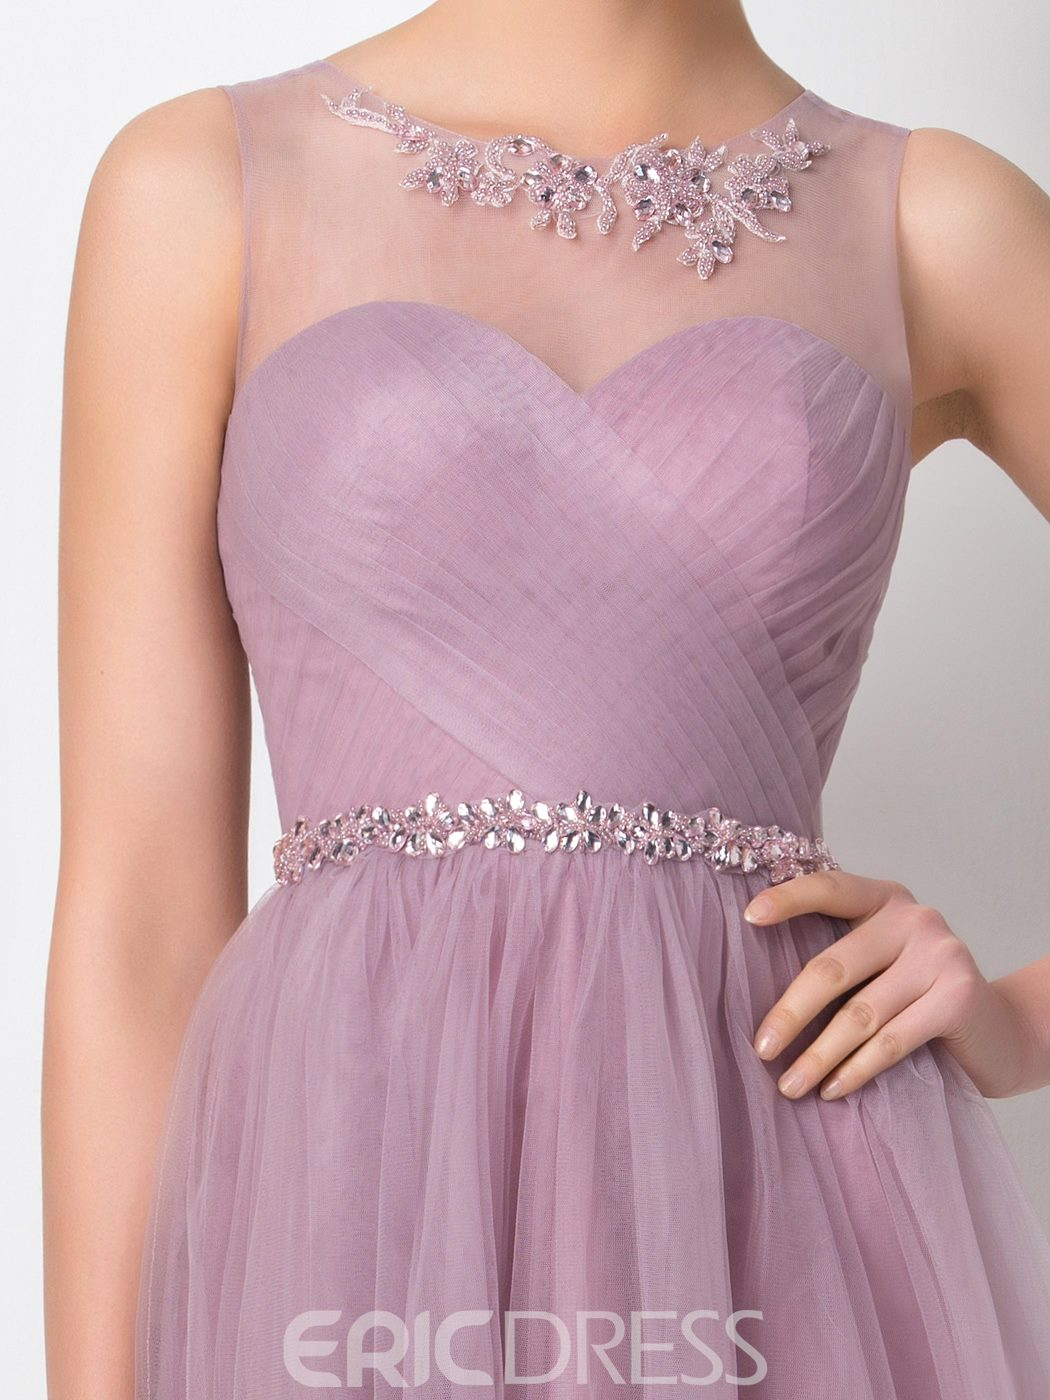 Ericdress Pretty Jewel Beading Knee Length Bridesmaid Dress